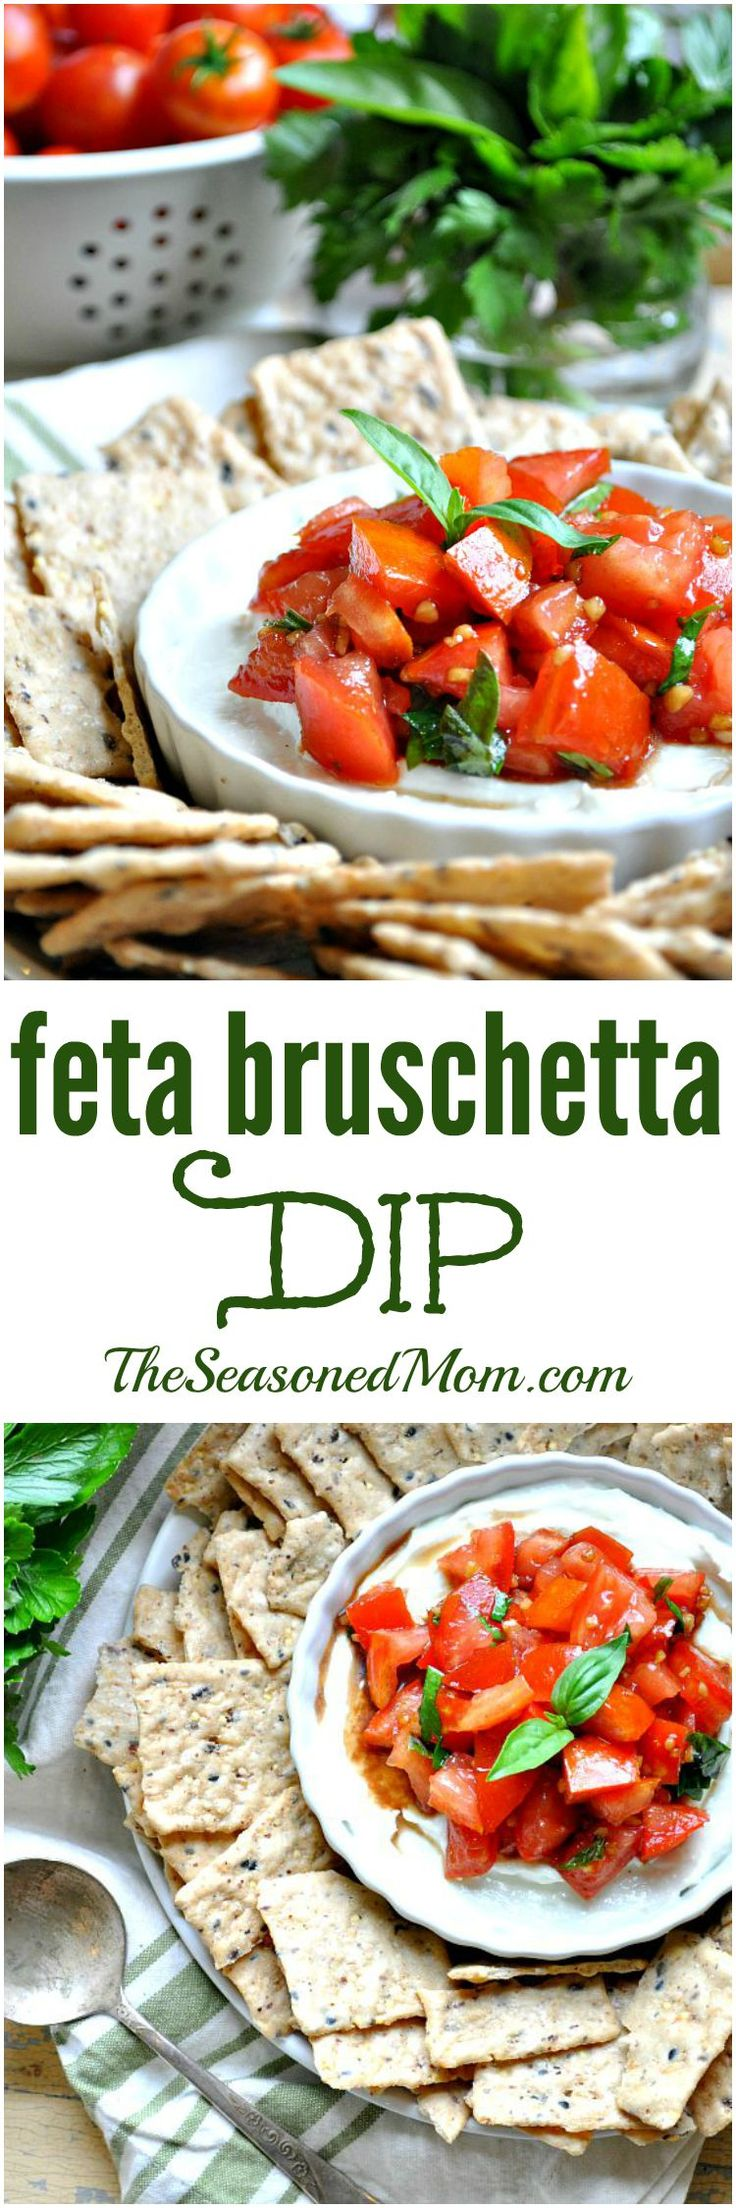 The perfect Mediterranean-style appetizer for all of your summer parties! A blend of fresh tomatoes and herbs sit on top of a creamy Feta cheese base in this Feta Bruschetta Dip! #ad